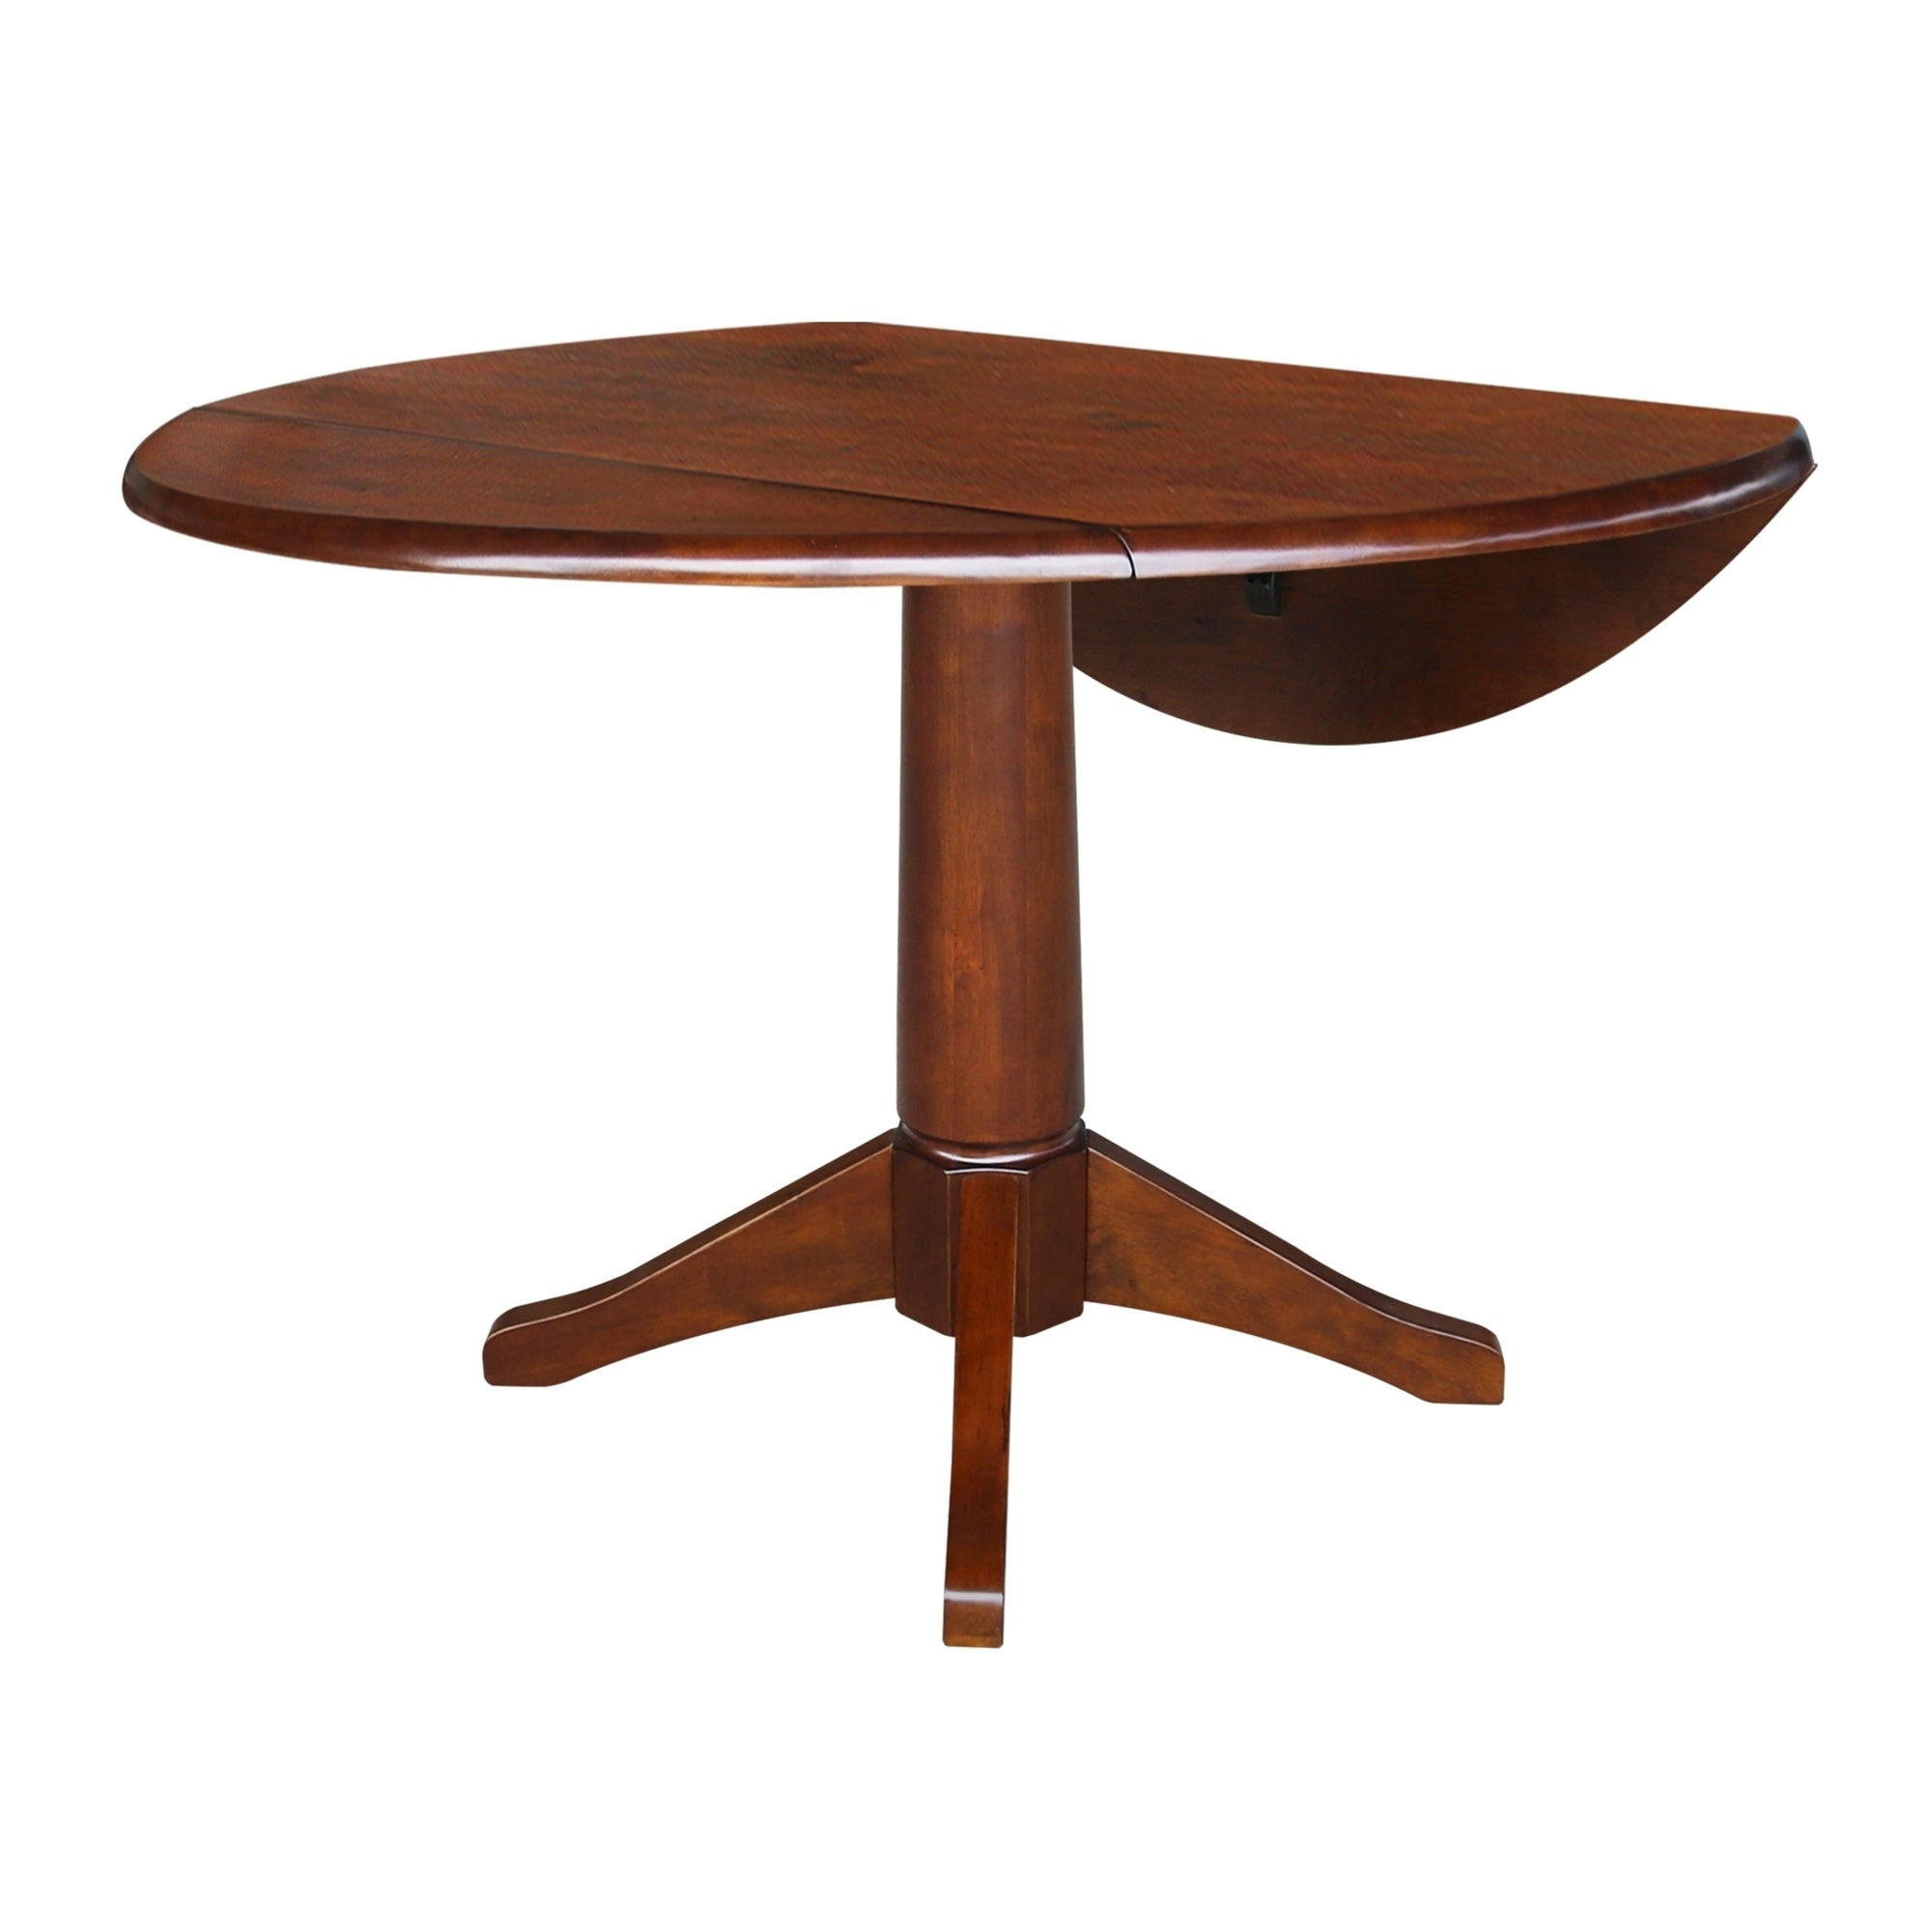 Most Current International Concepts Espresso Wood 42 Inch Round Dual Drop Leaf Table Intended For Alamo Transitional 4 Seating Double Drop Leaf Round Casual Dining Tables (View 14 of 26)